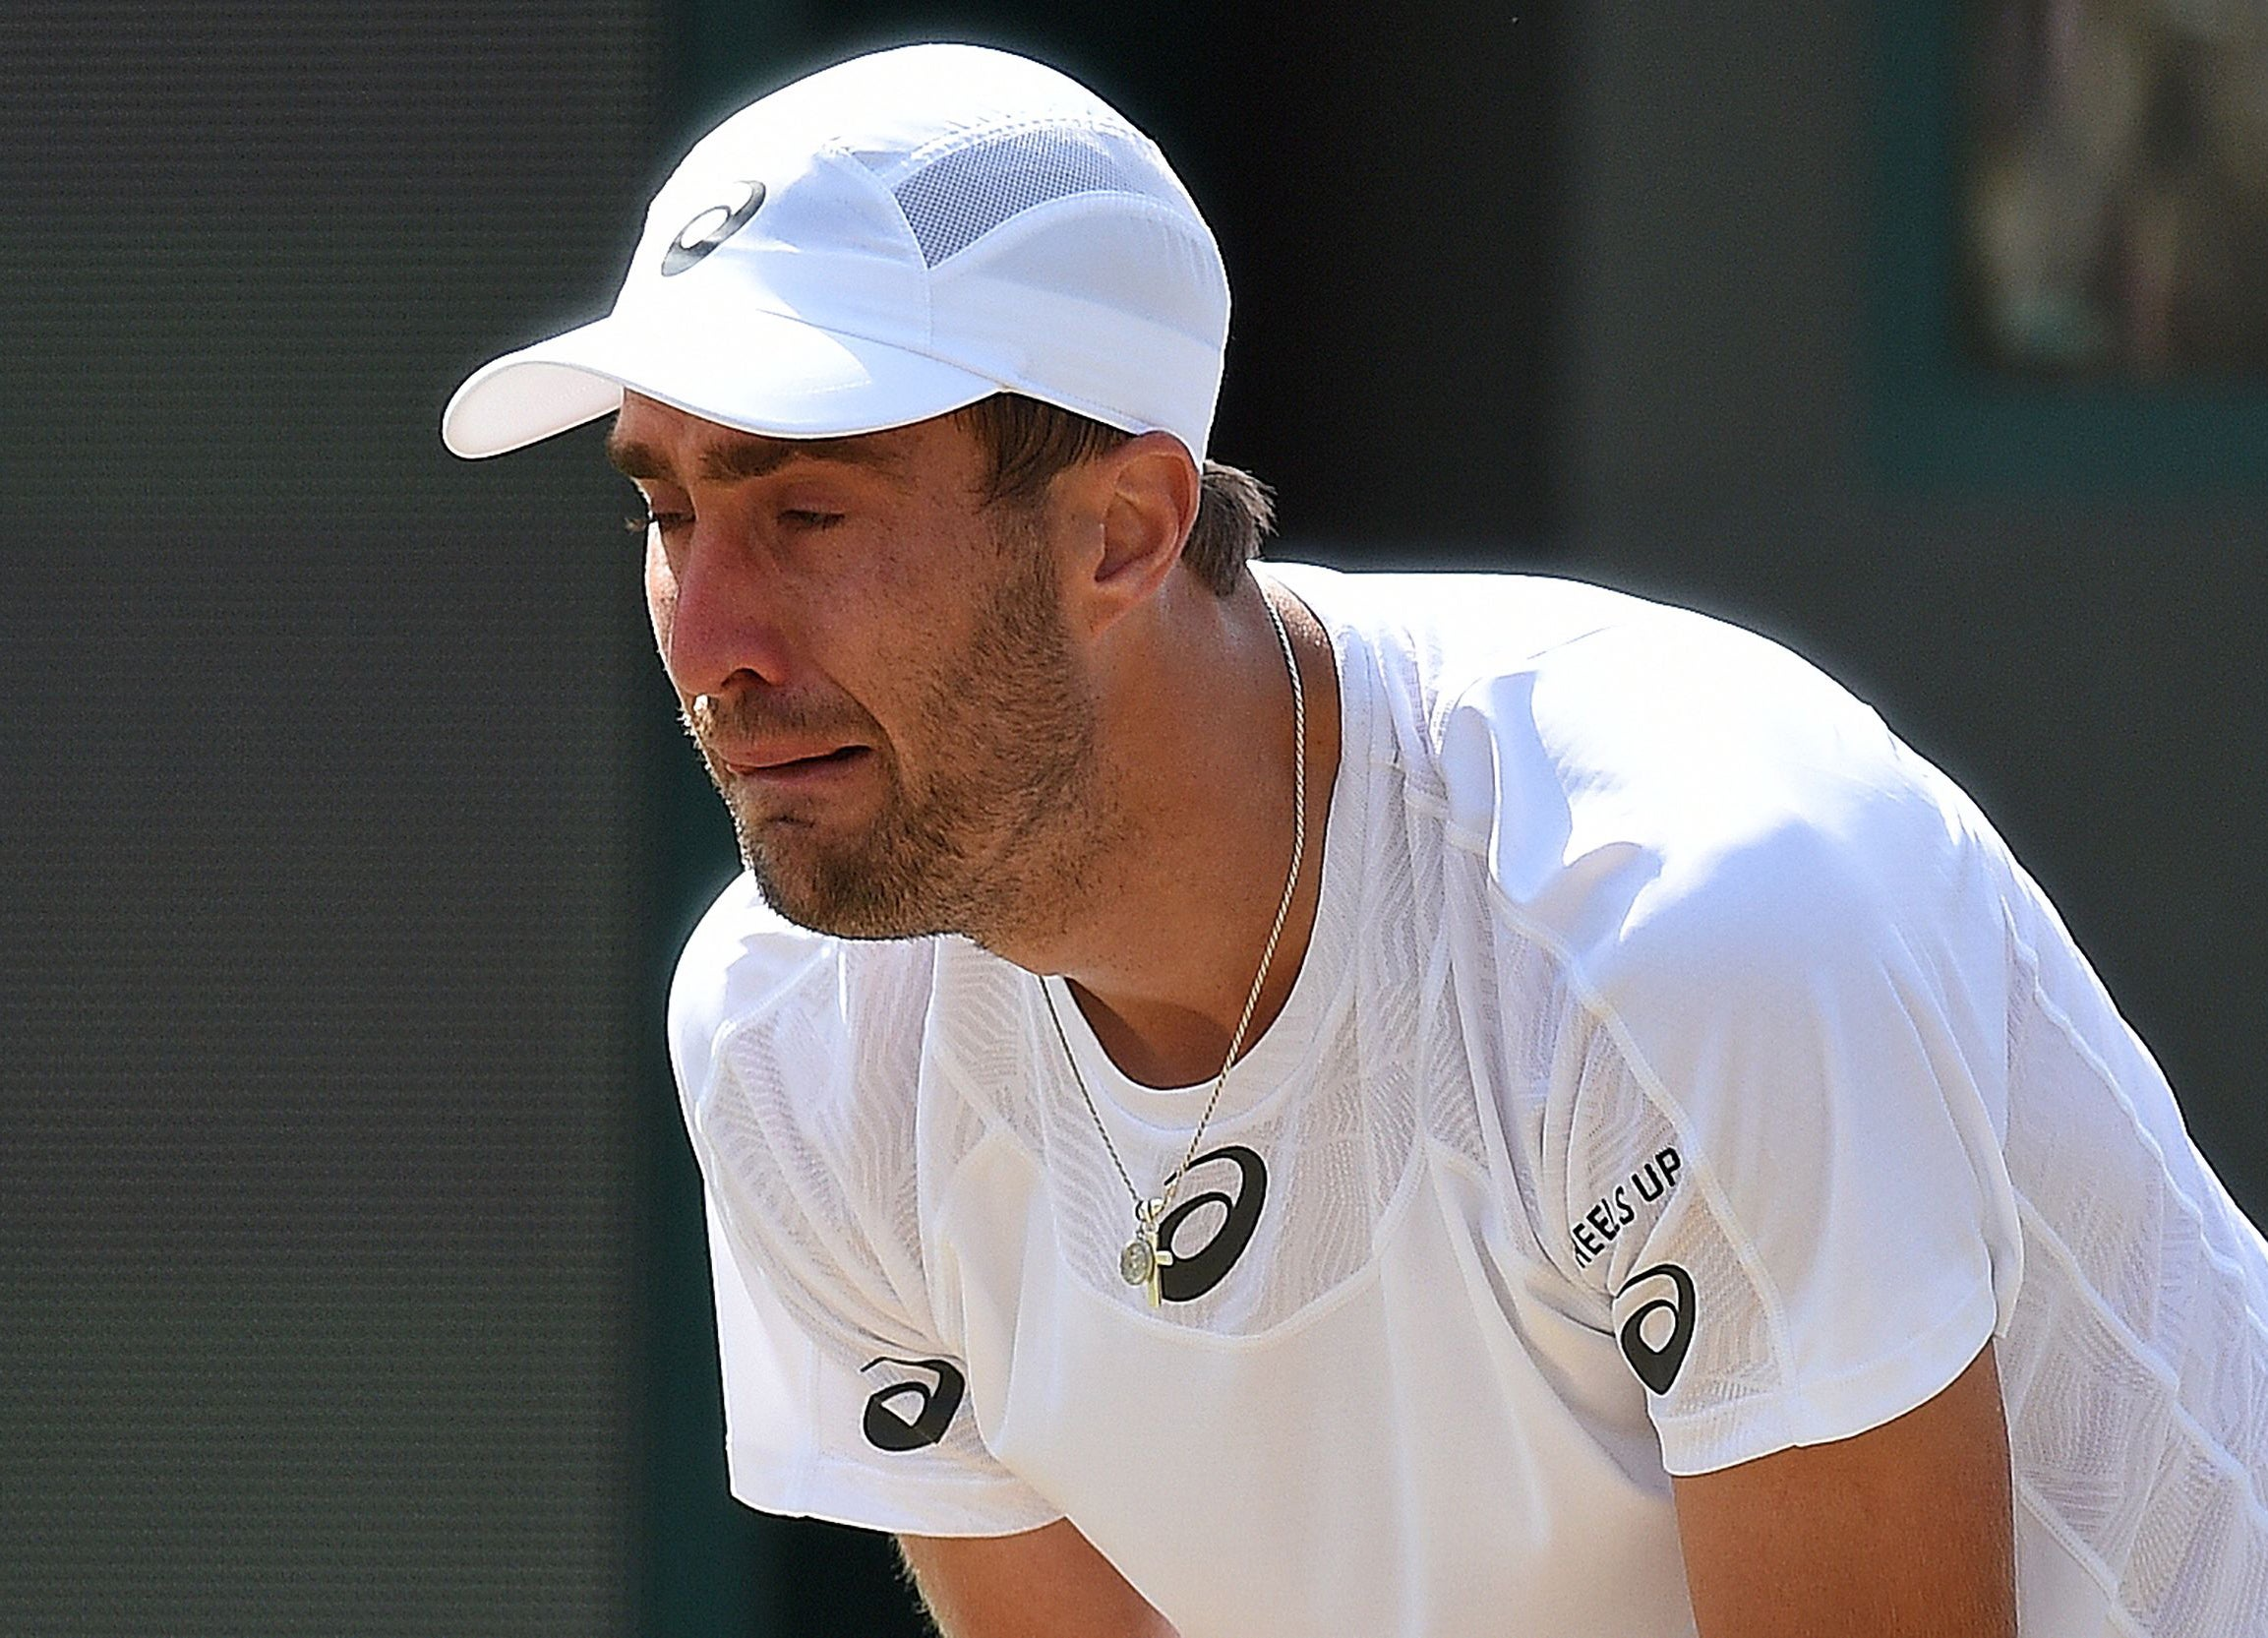 Steve Johnson breaks down in tears against Marin Cilic at his